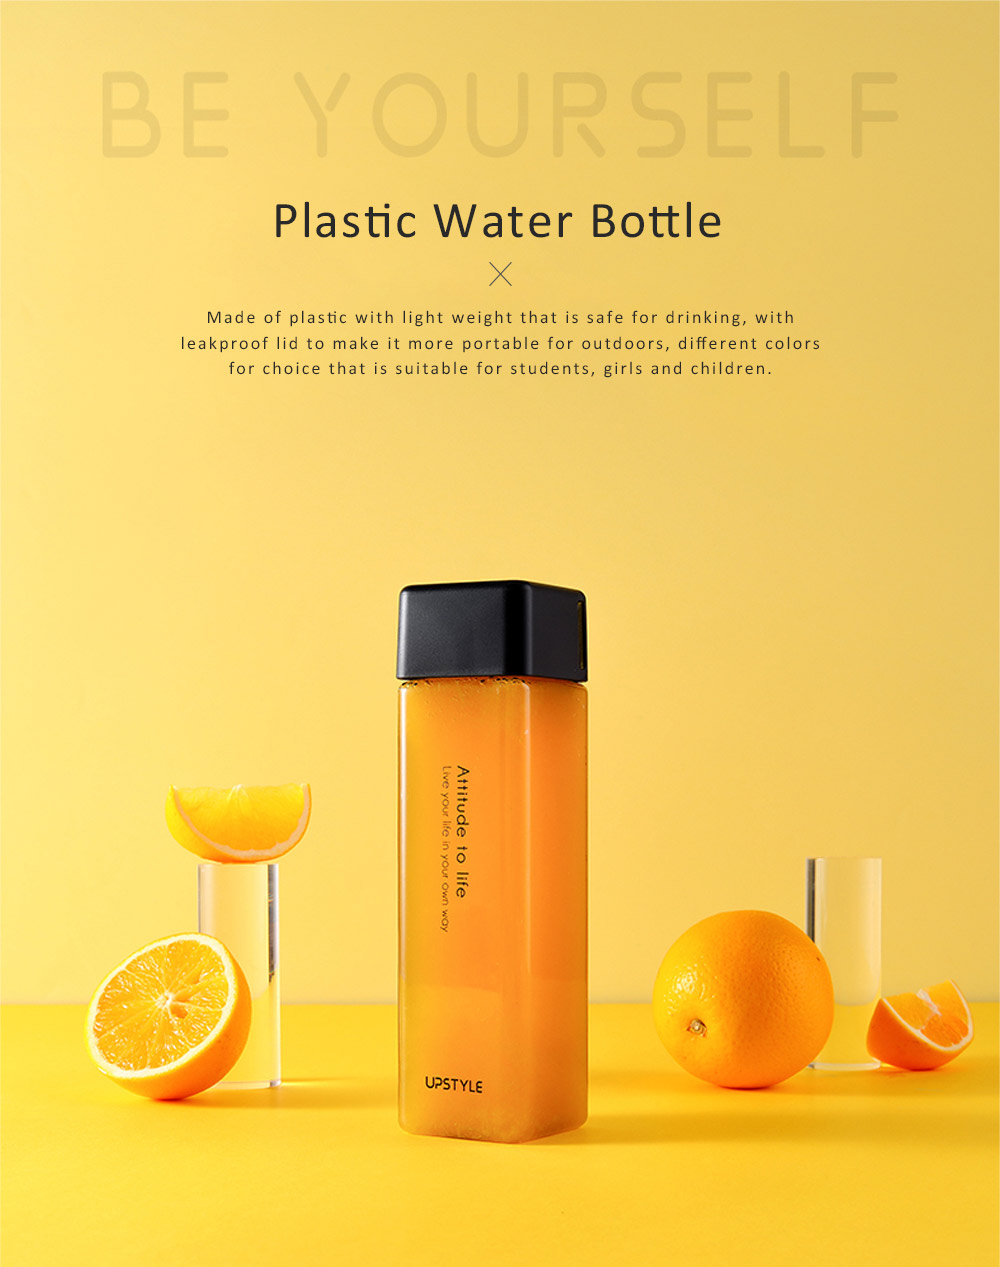 Plastic Water Bottle for Students, Girls, Children, Leakproof Drinking Bottle with Light Weight, Portable Water Bottle for Outdoors 0